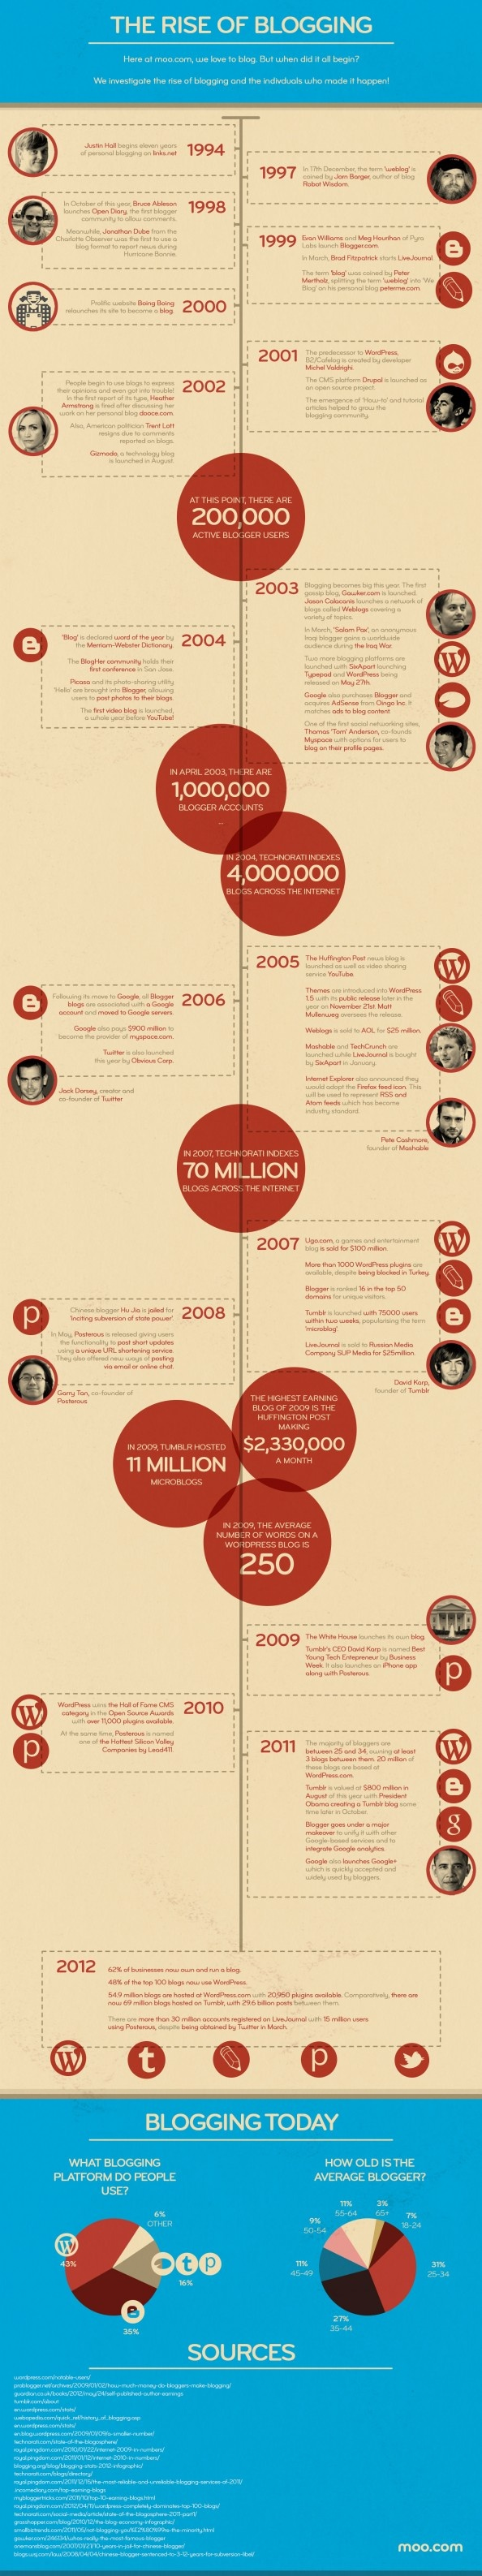 The Rise of Blogging Infographic